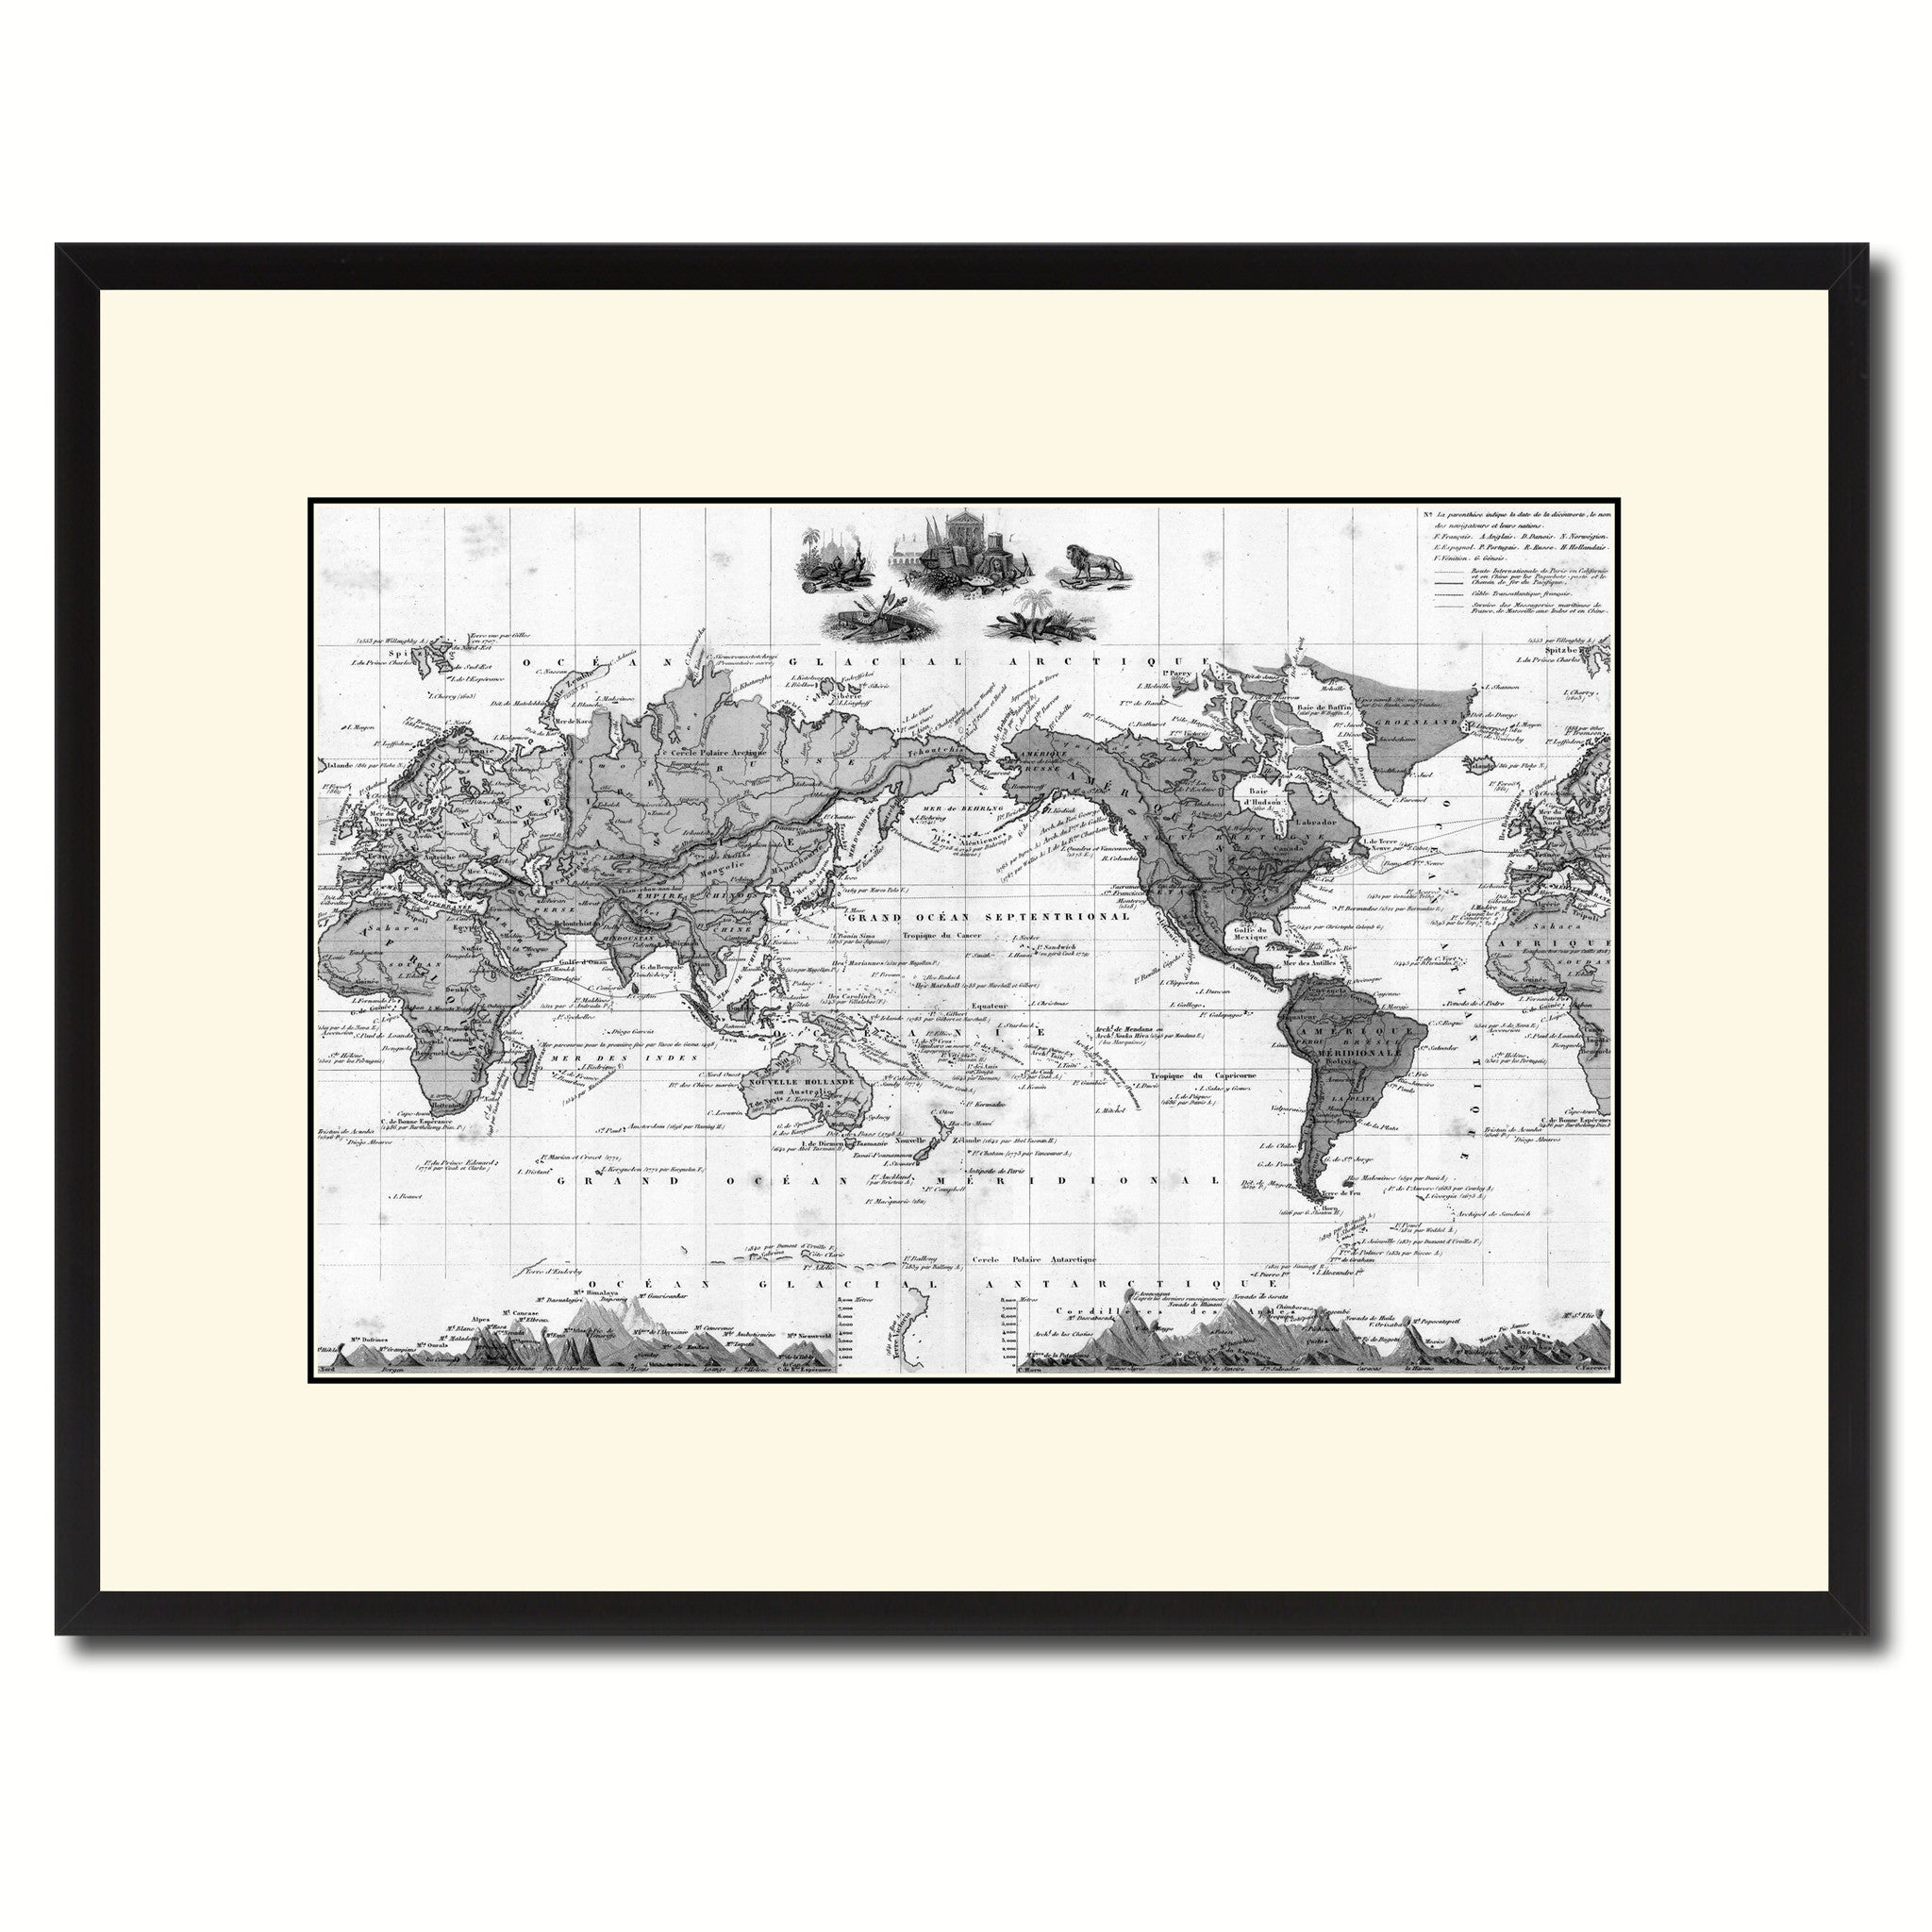 world vintage b w map canvas print picture frame home decor wall art gift ideas ebay. Black Bedroom Furniture Sets. Home Design Ideas